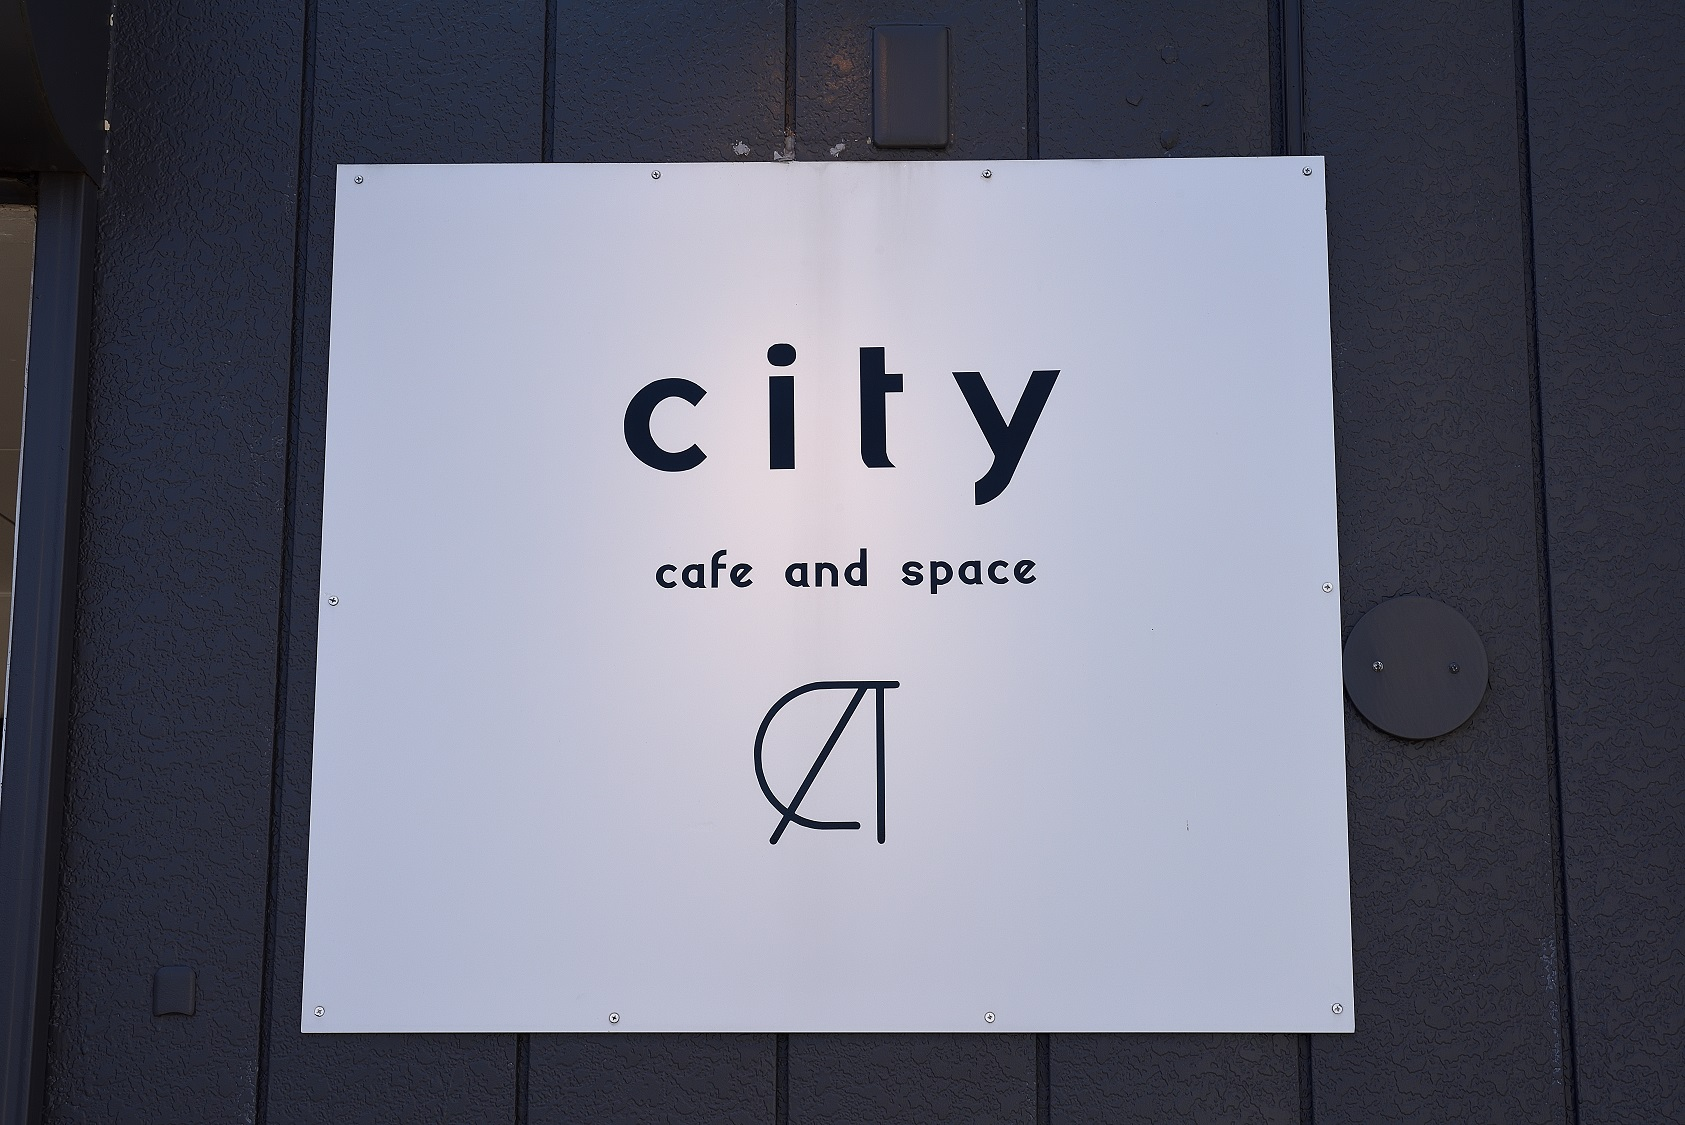 city cafe and space 看板 2